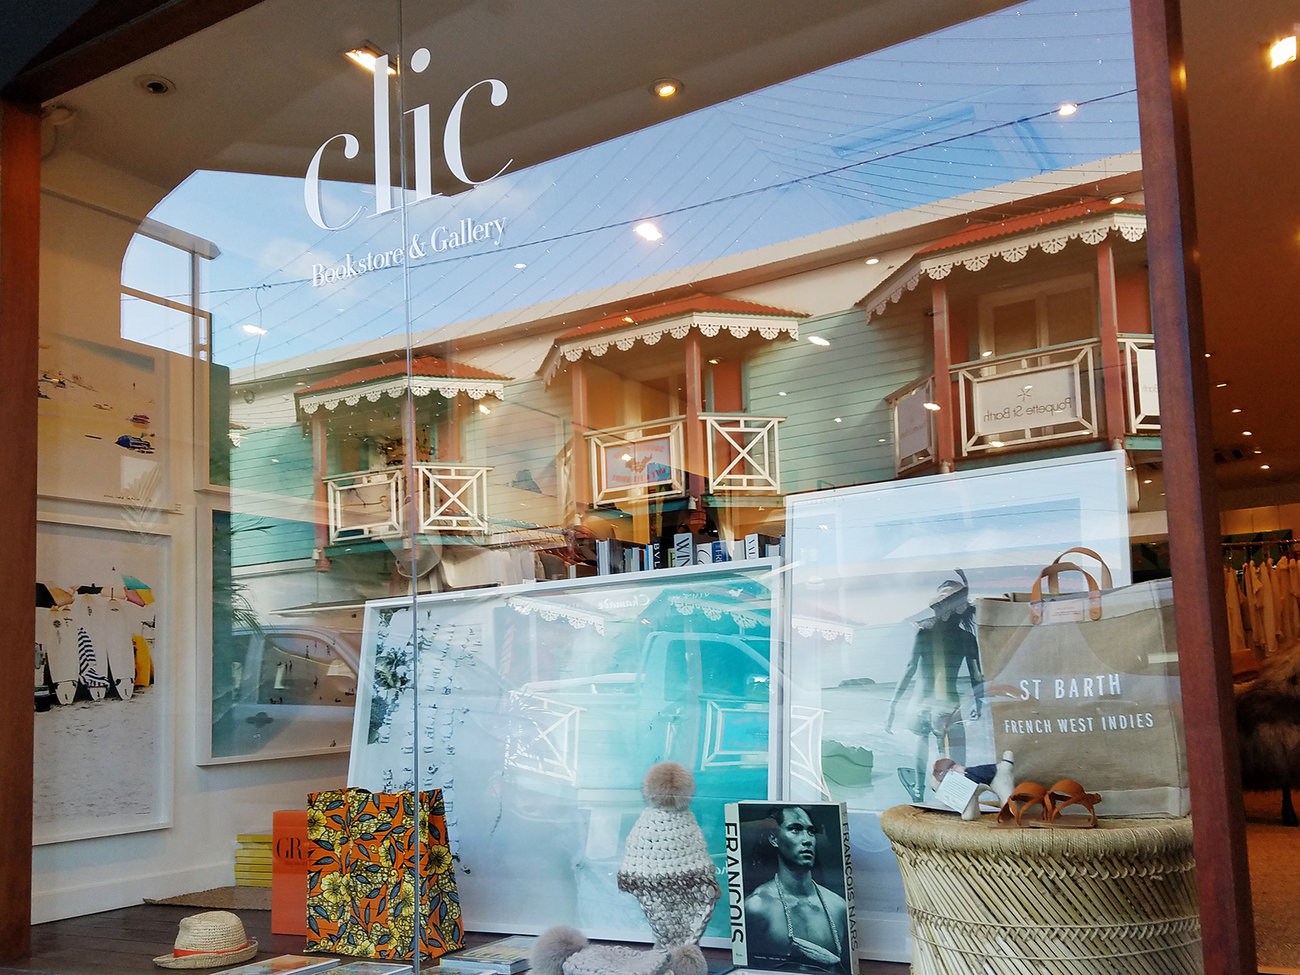 Clic Gallery & Bookstore in St. Barts